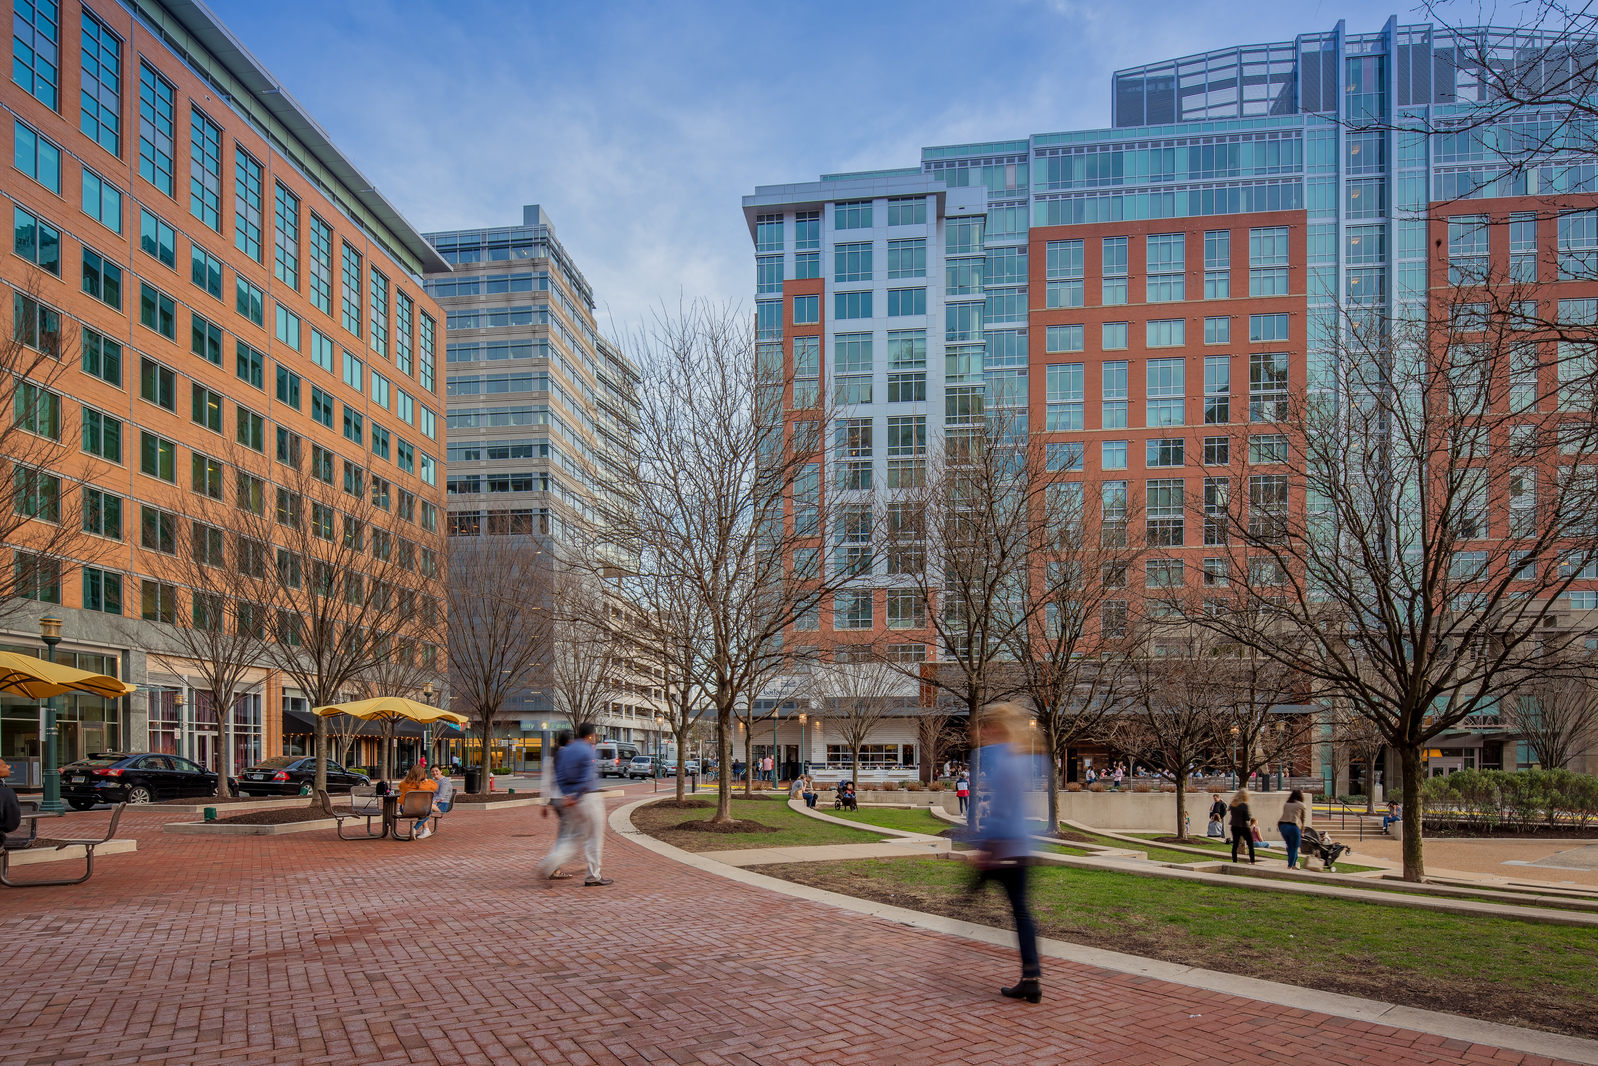 With easy access to the region's top employers, the Herndon-Reston neighborhood has incredible long-term value.